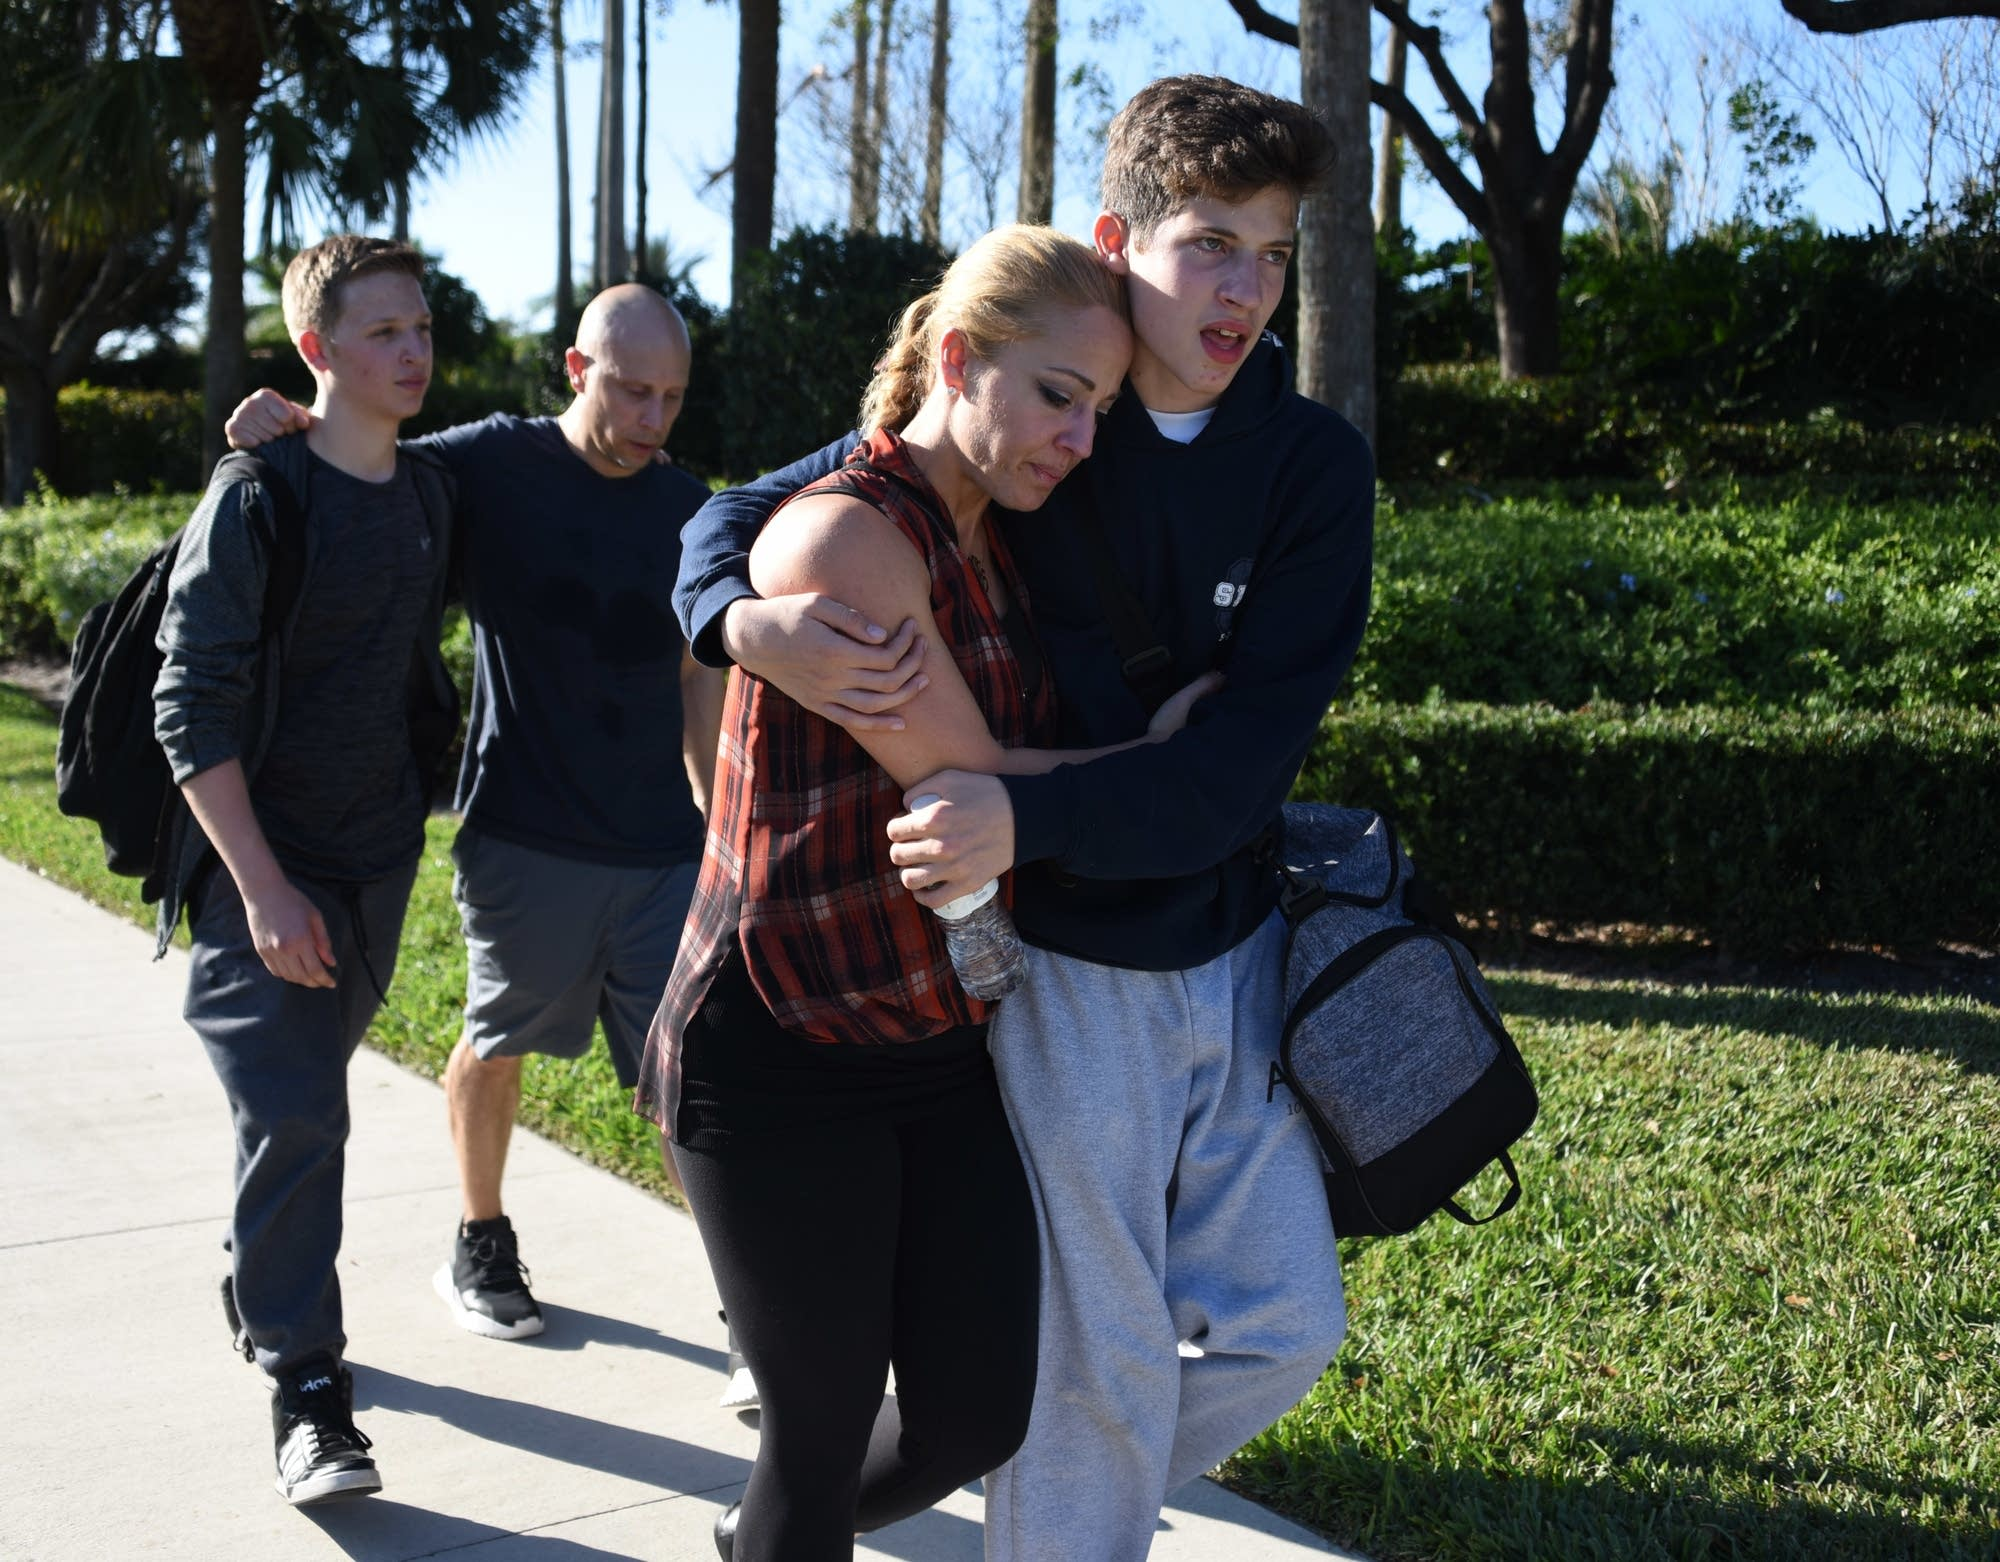 Students react following a shooting at a high school in Parkland, Florida.